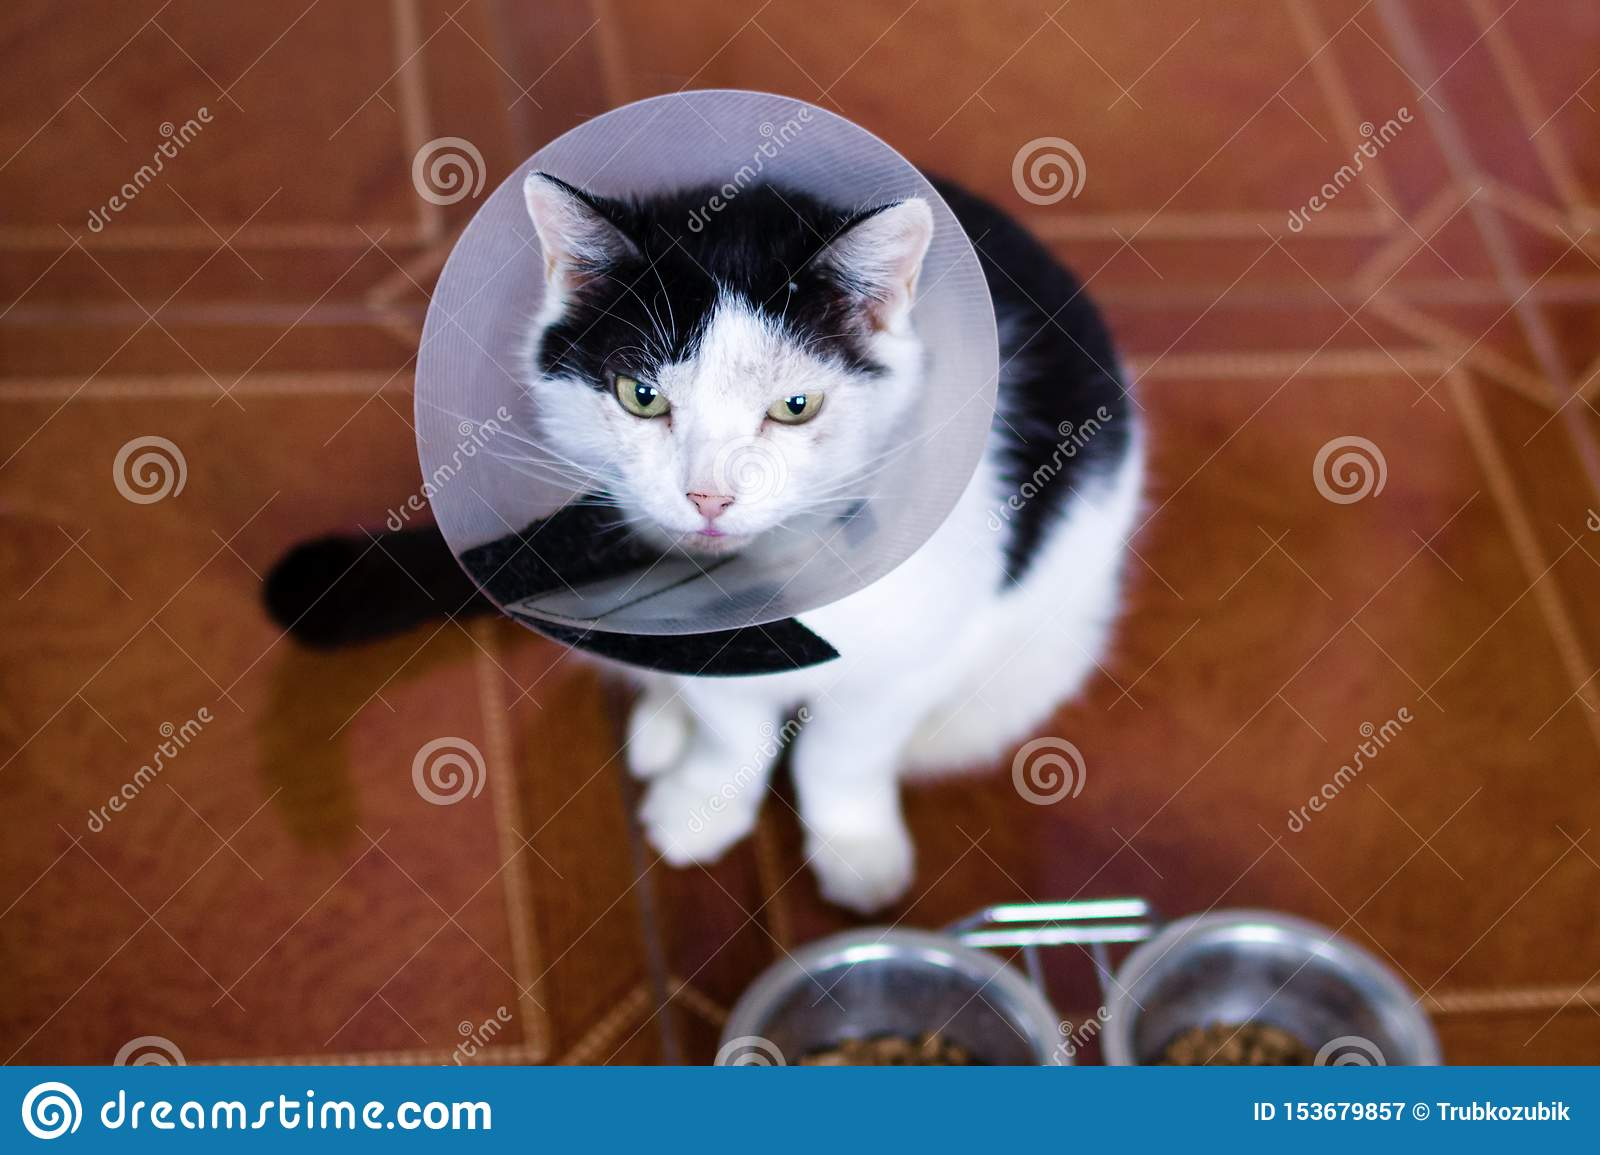 Black-white cat with plastic medical collar is sitting on a floor of kitchen near to bowls with cat food